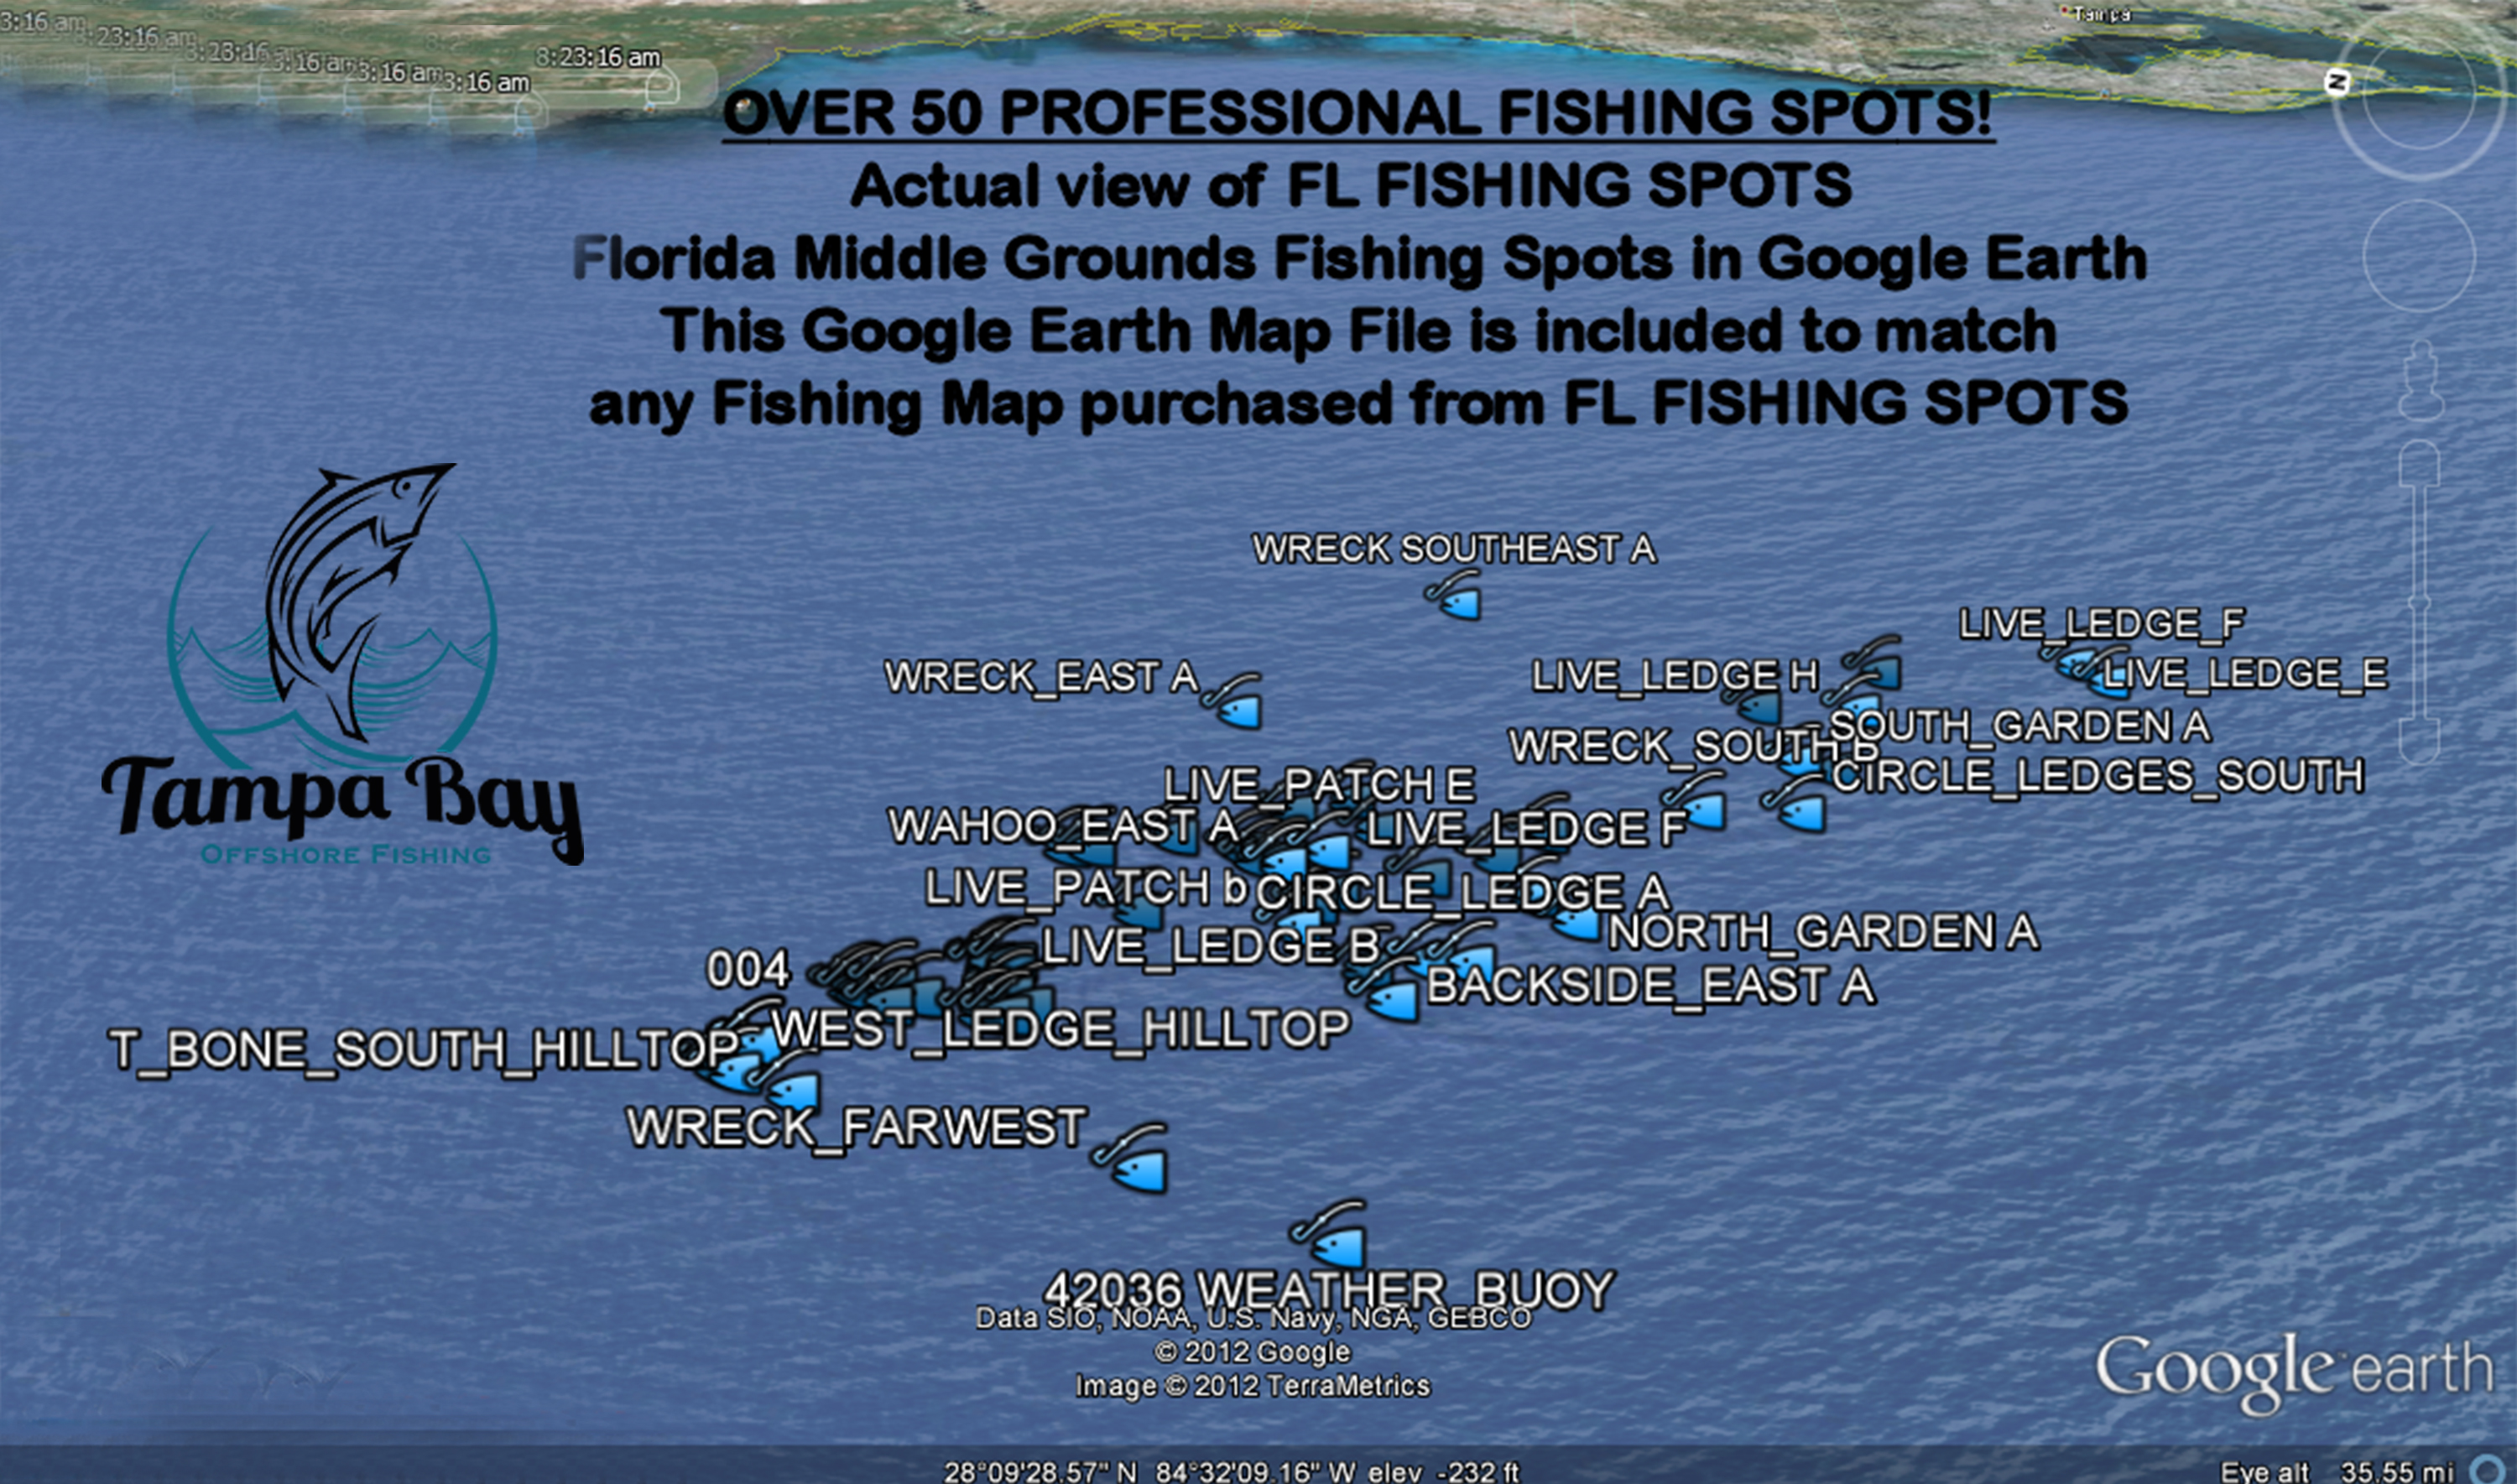 Florida middlegrounds charter fishing trips